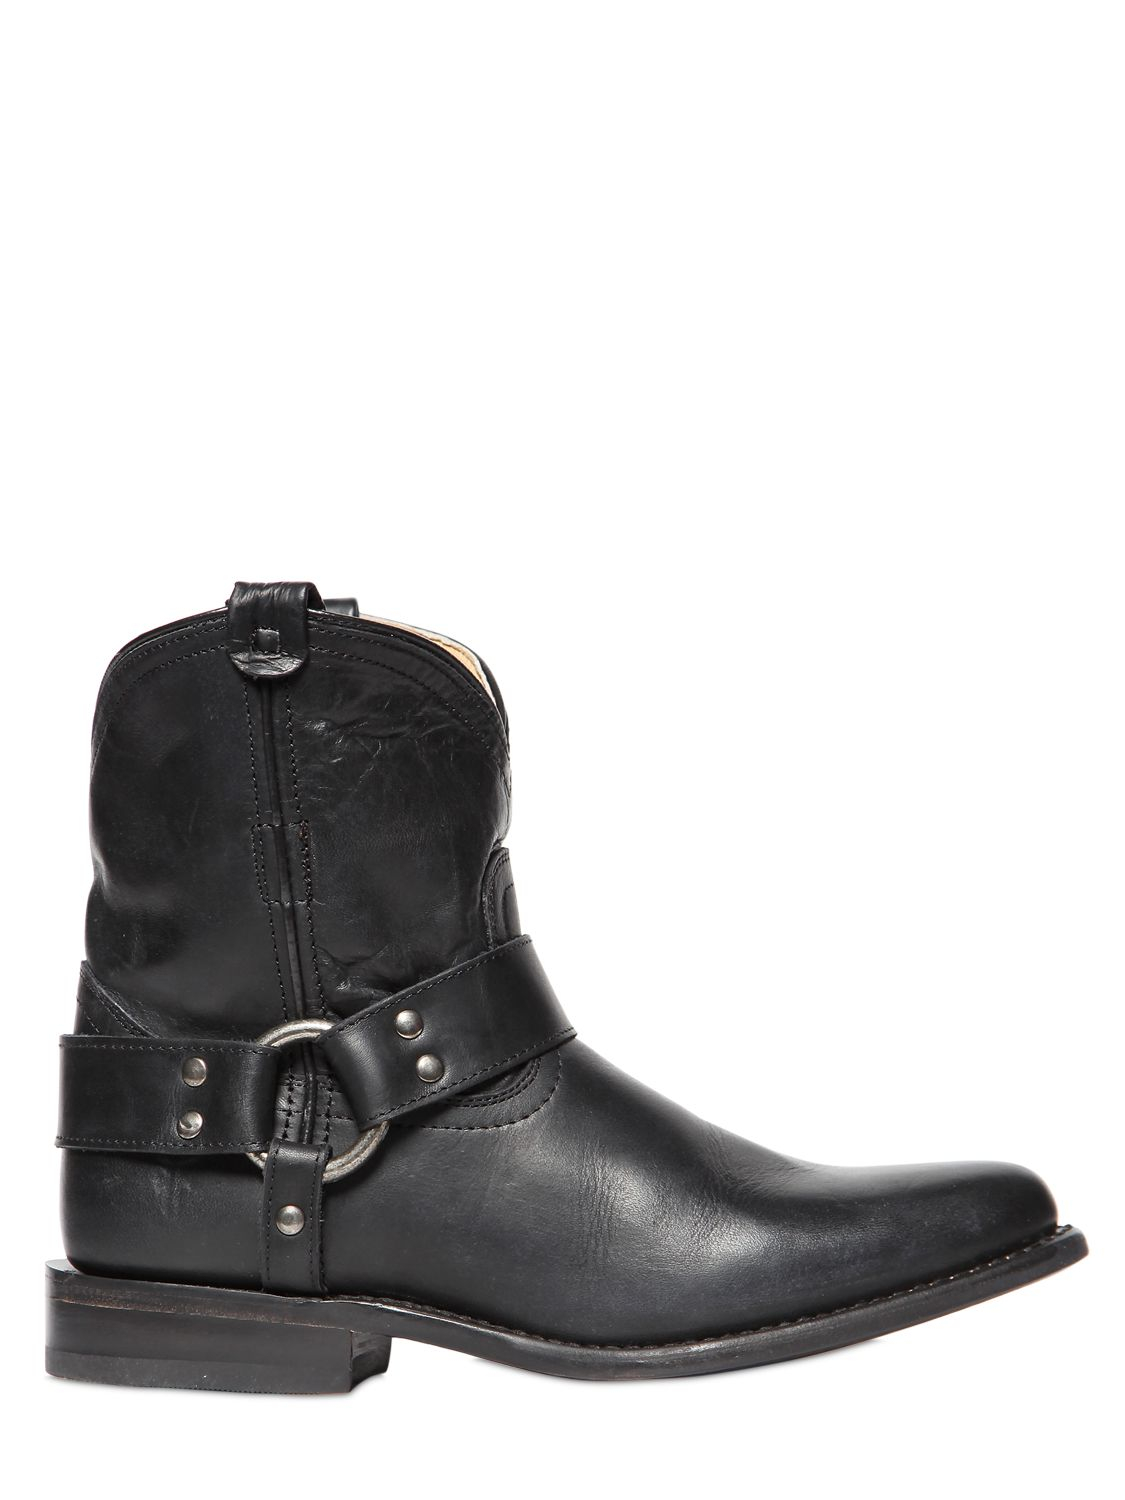 Frye 20Mm Wyatt Harness Leather Cowboy Boots in Black | Lyst